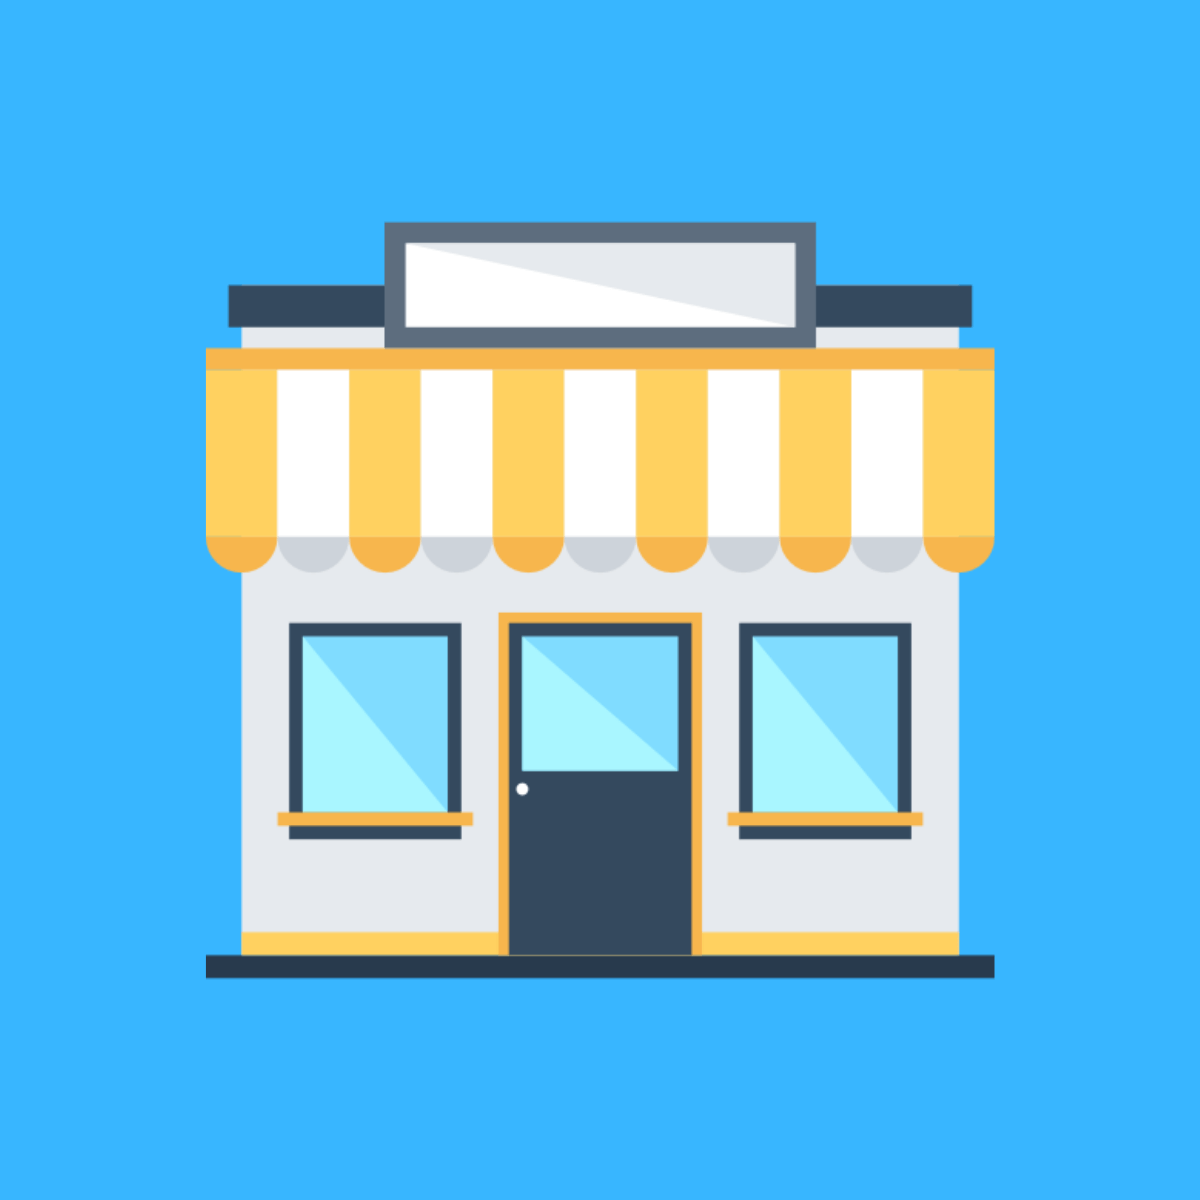 Home-Based Business vs. Brick And Mortar Business